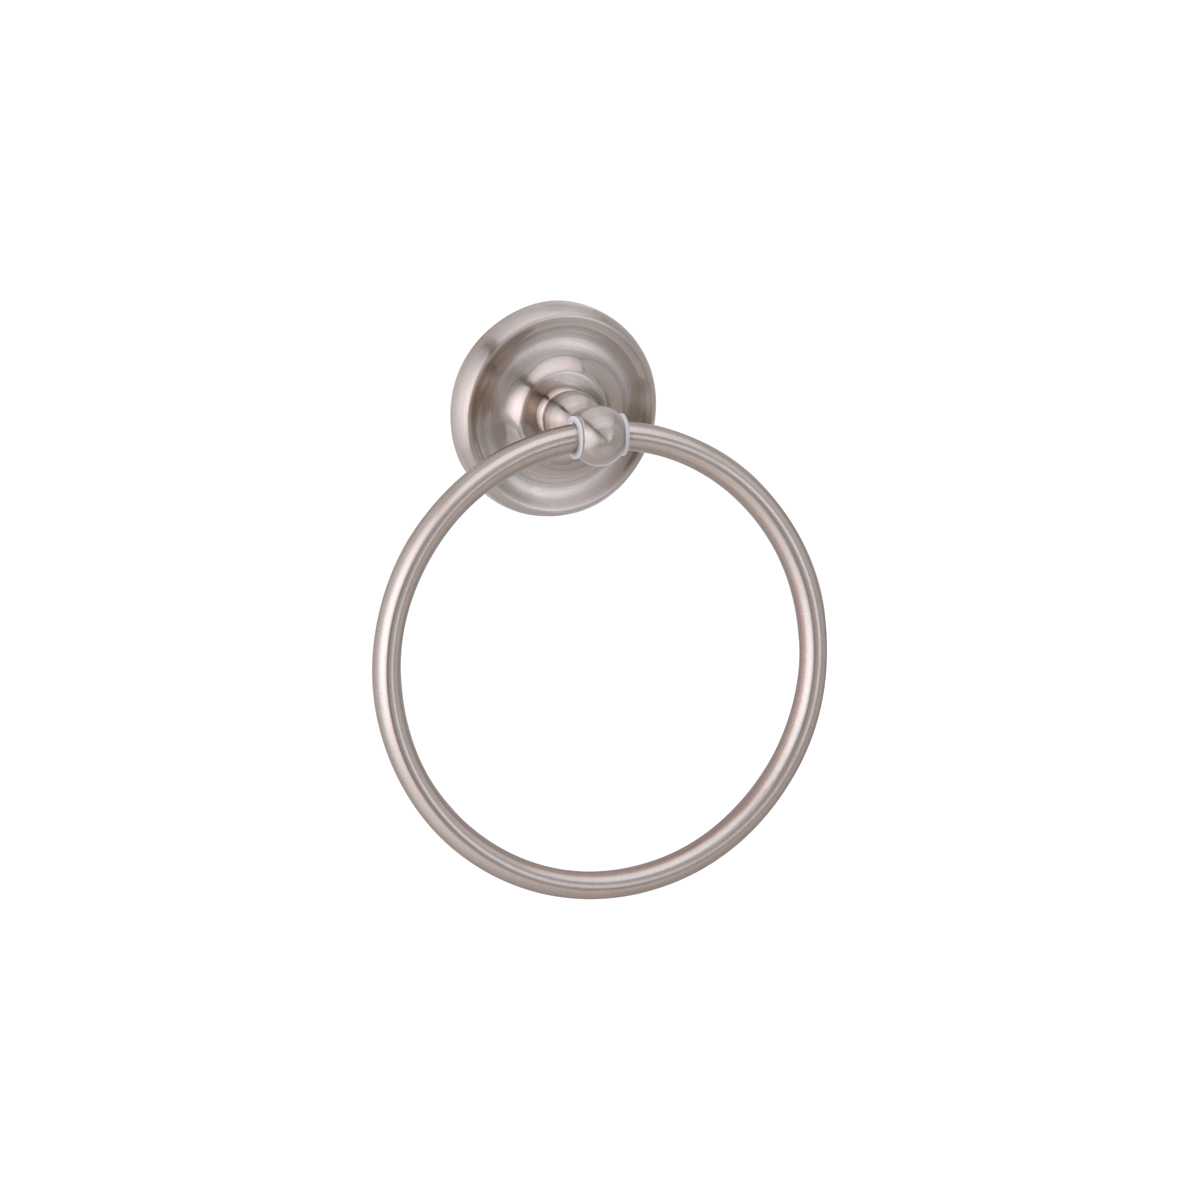 Taymor Orion Towel Ring